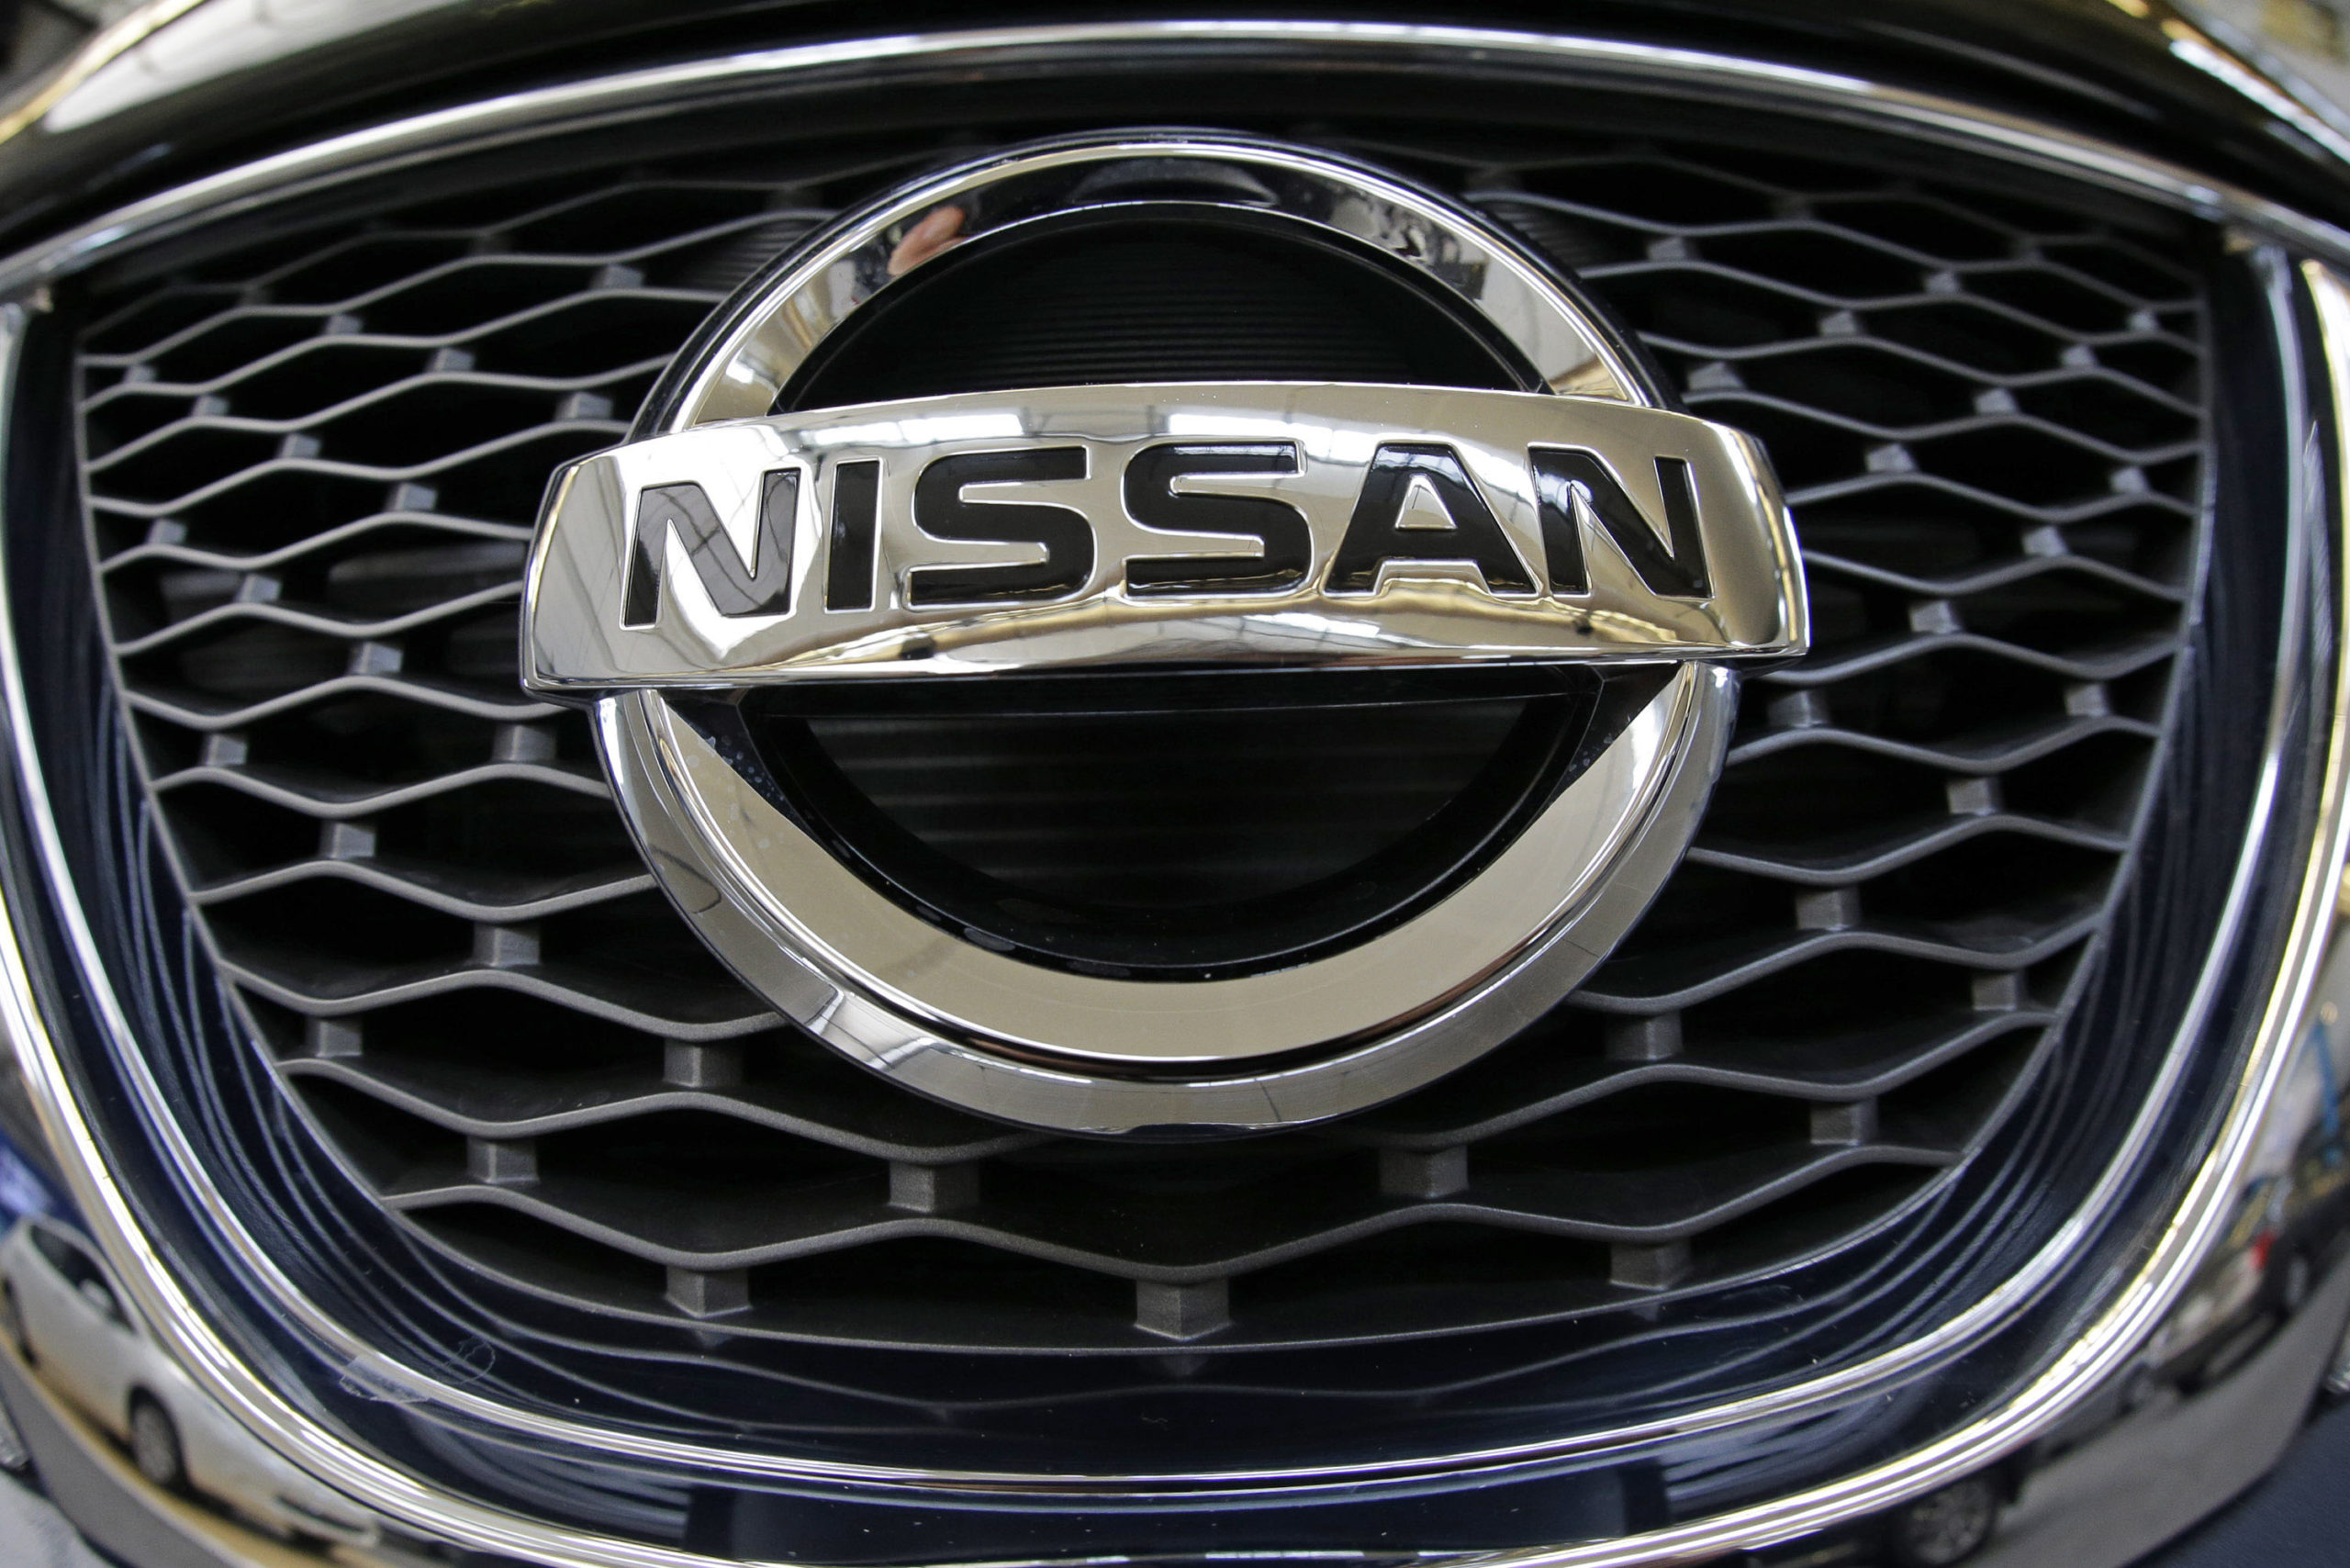 Nissan Motor suffered a loss of $ 3.1 billion